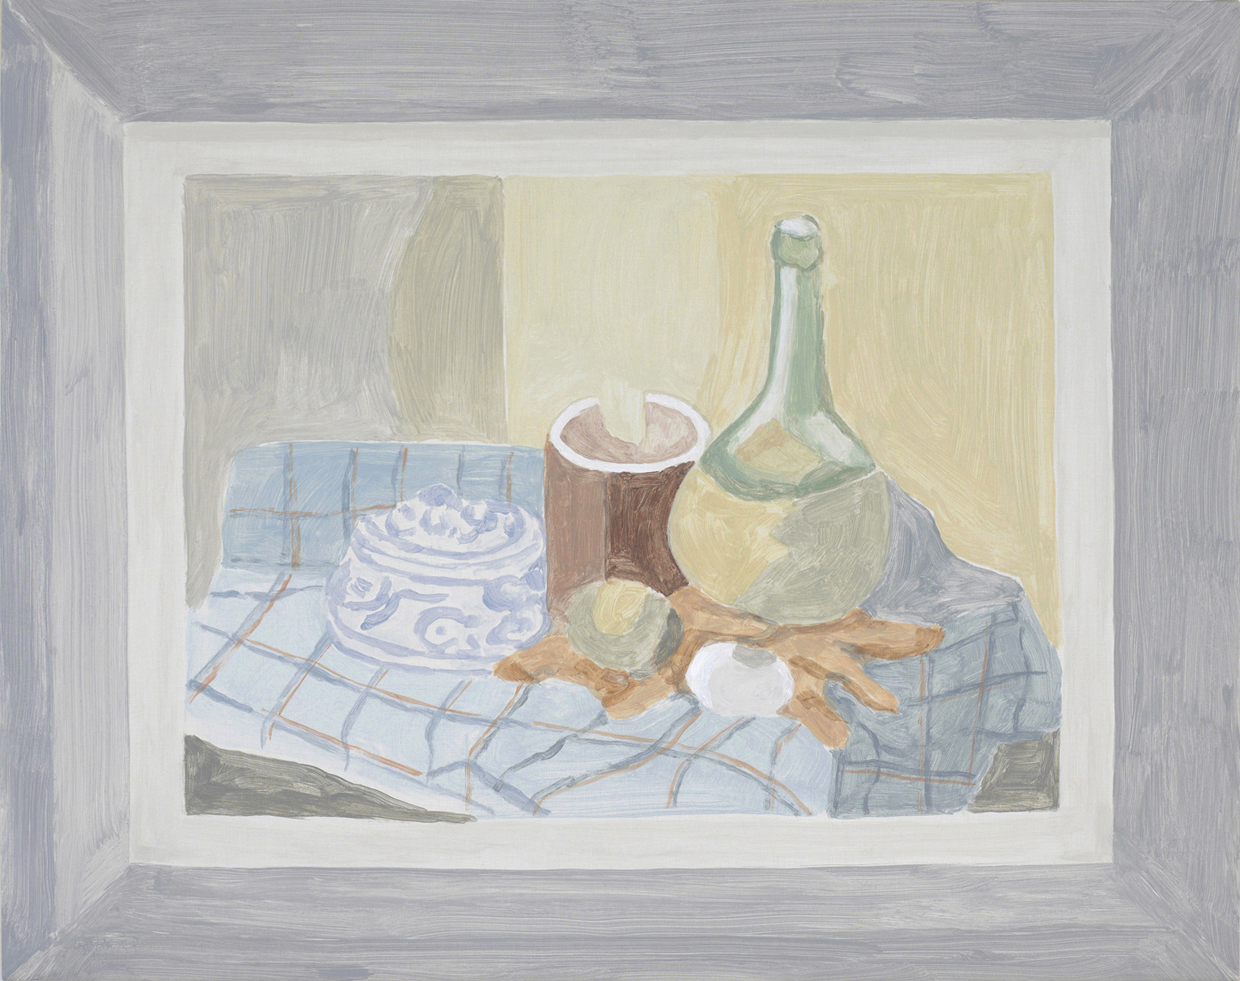 Framed Painting: Still Life with Bottle, acrylic on canvas over board, 18.5 x 23.5, 2013.